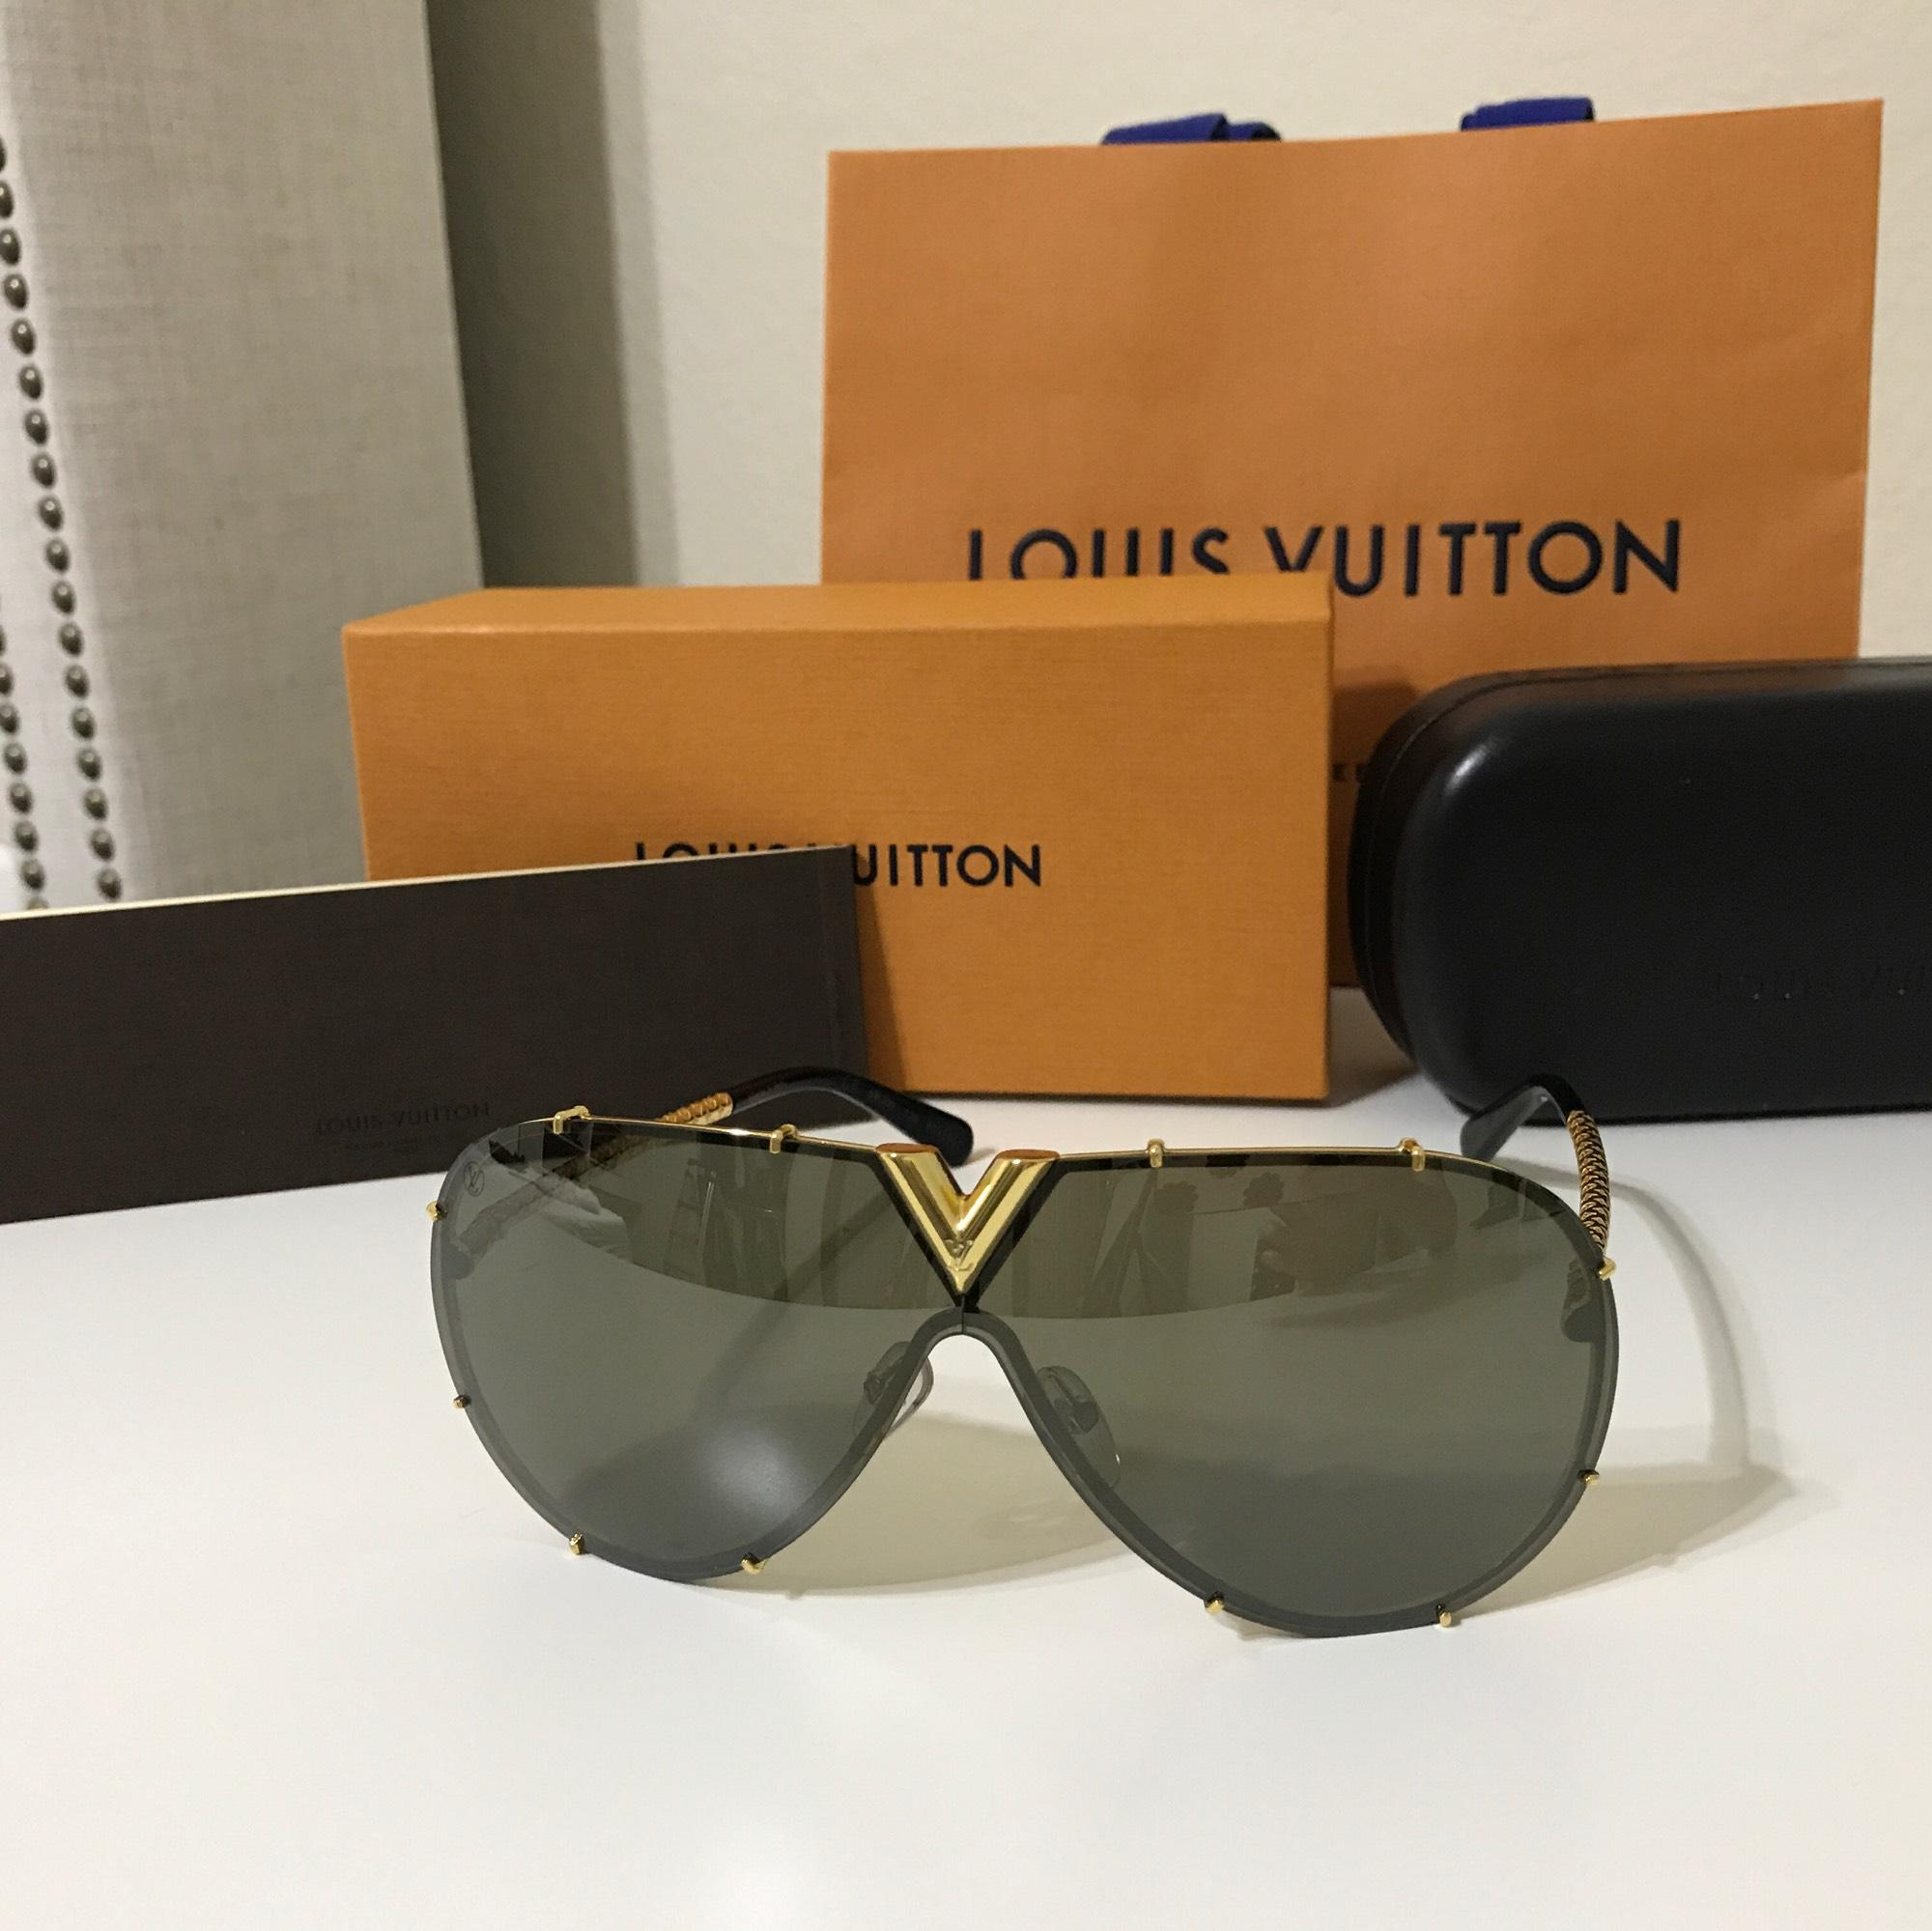 louis vuitton sunglasses. louis vuitton drive sunglasses